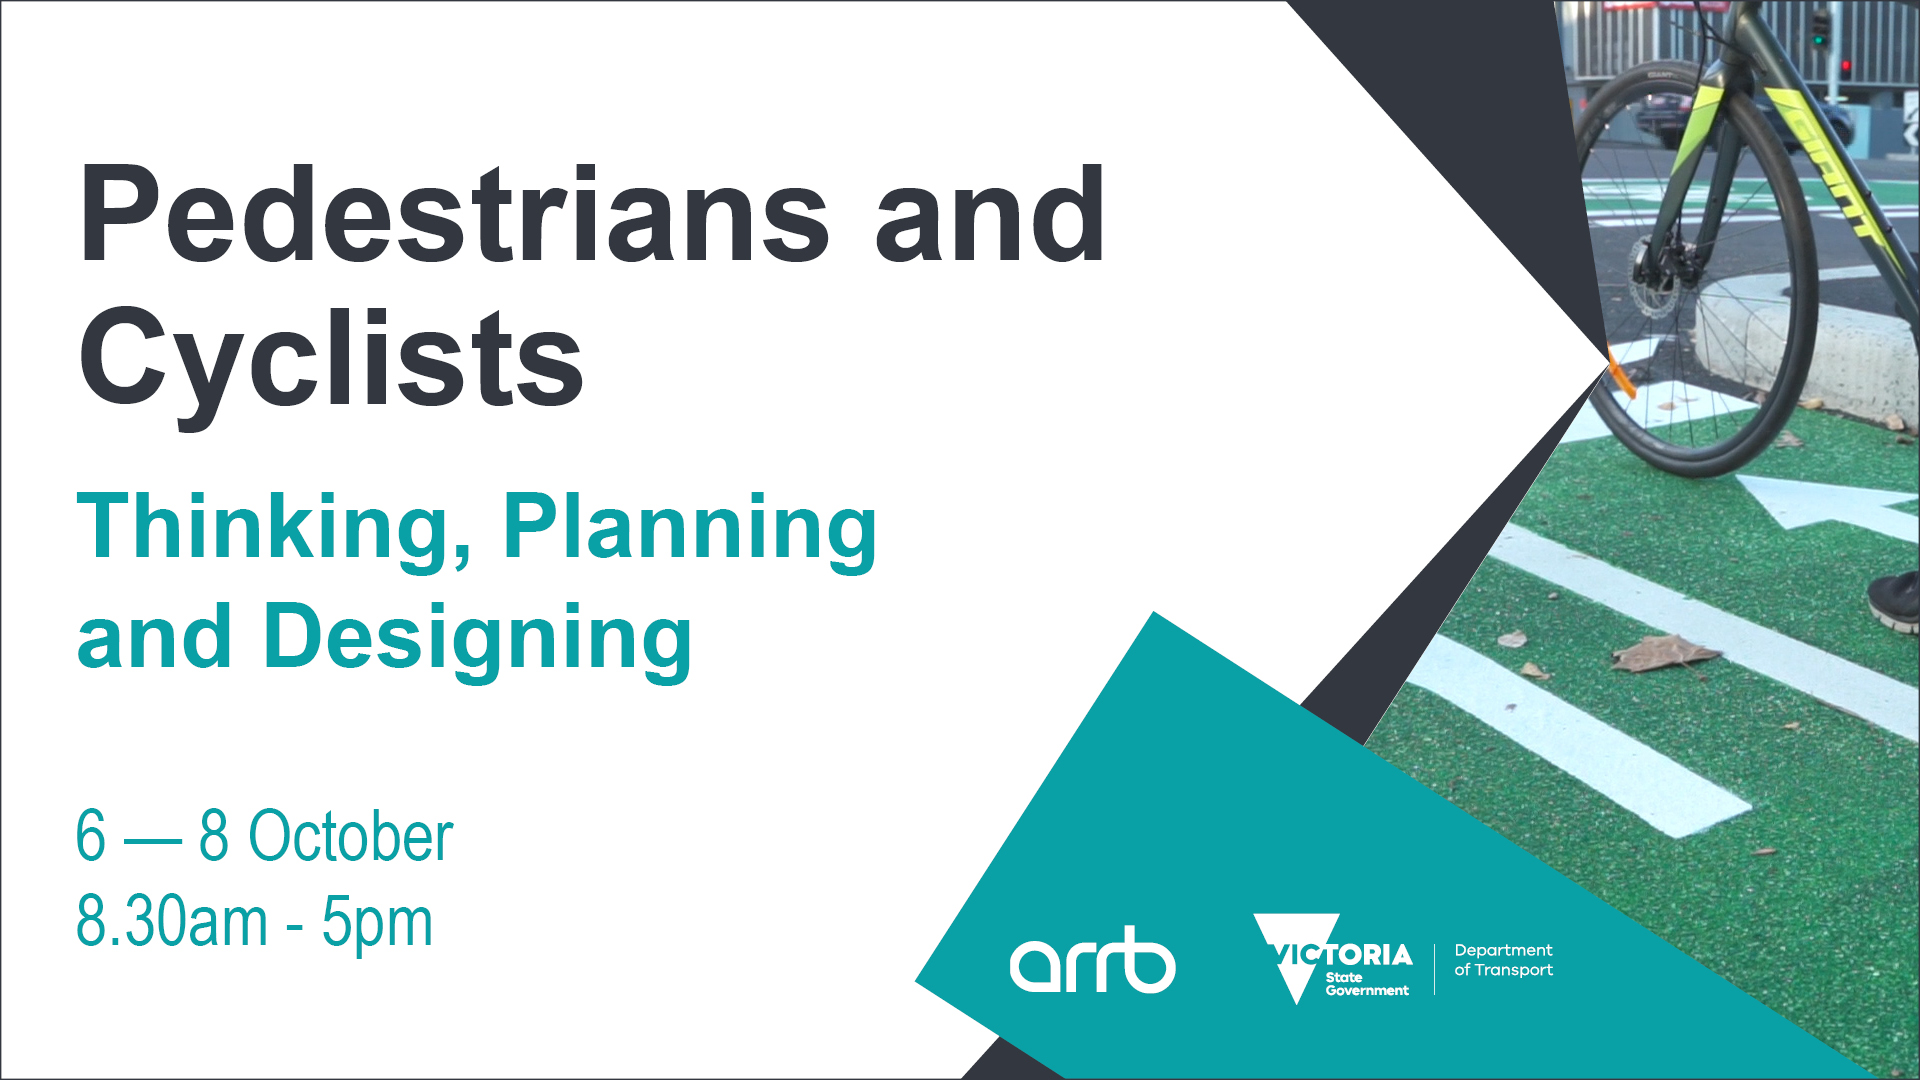 DoT Pedestrians & Cyclists - Thinking, Planning and Designing Workshop October